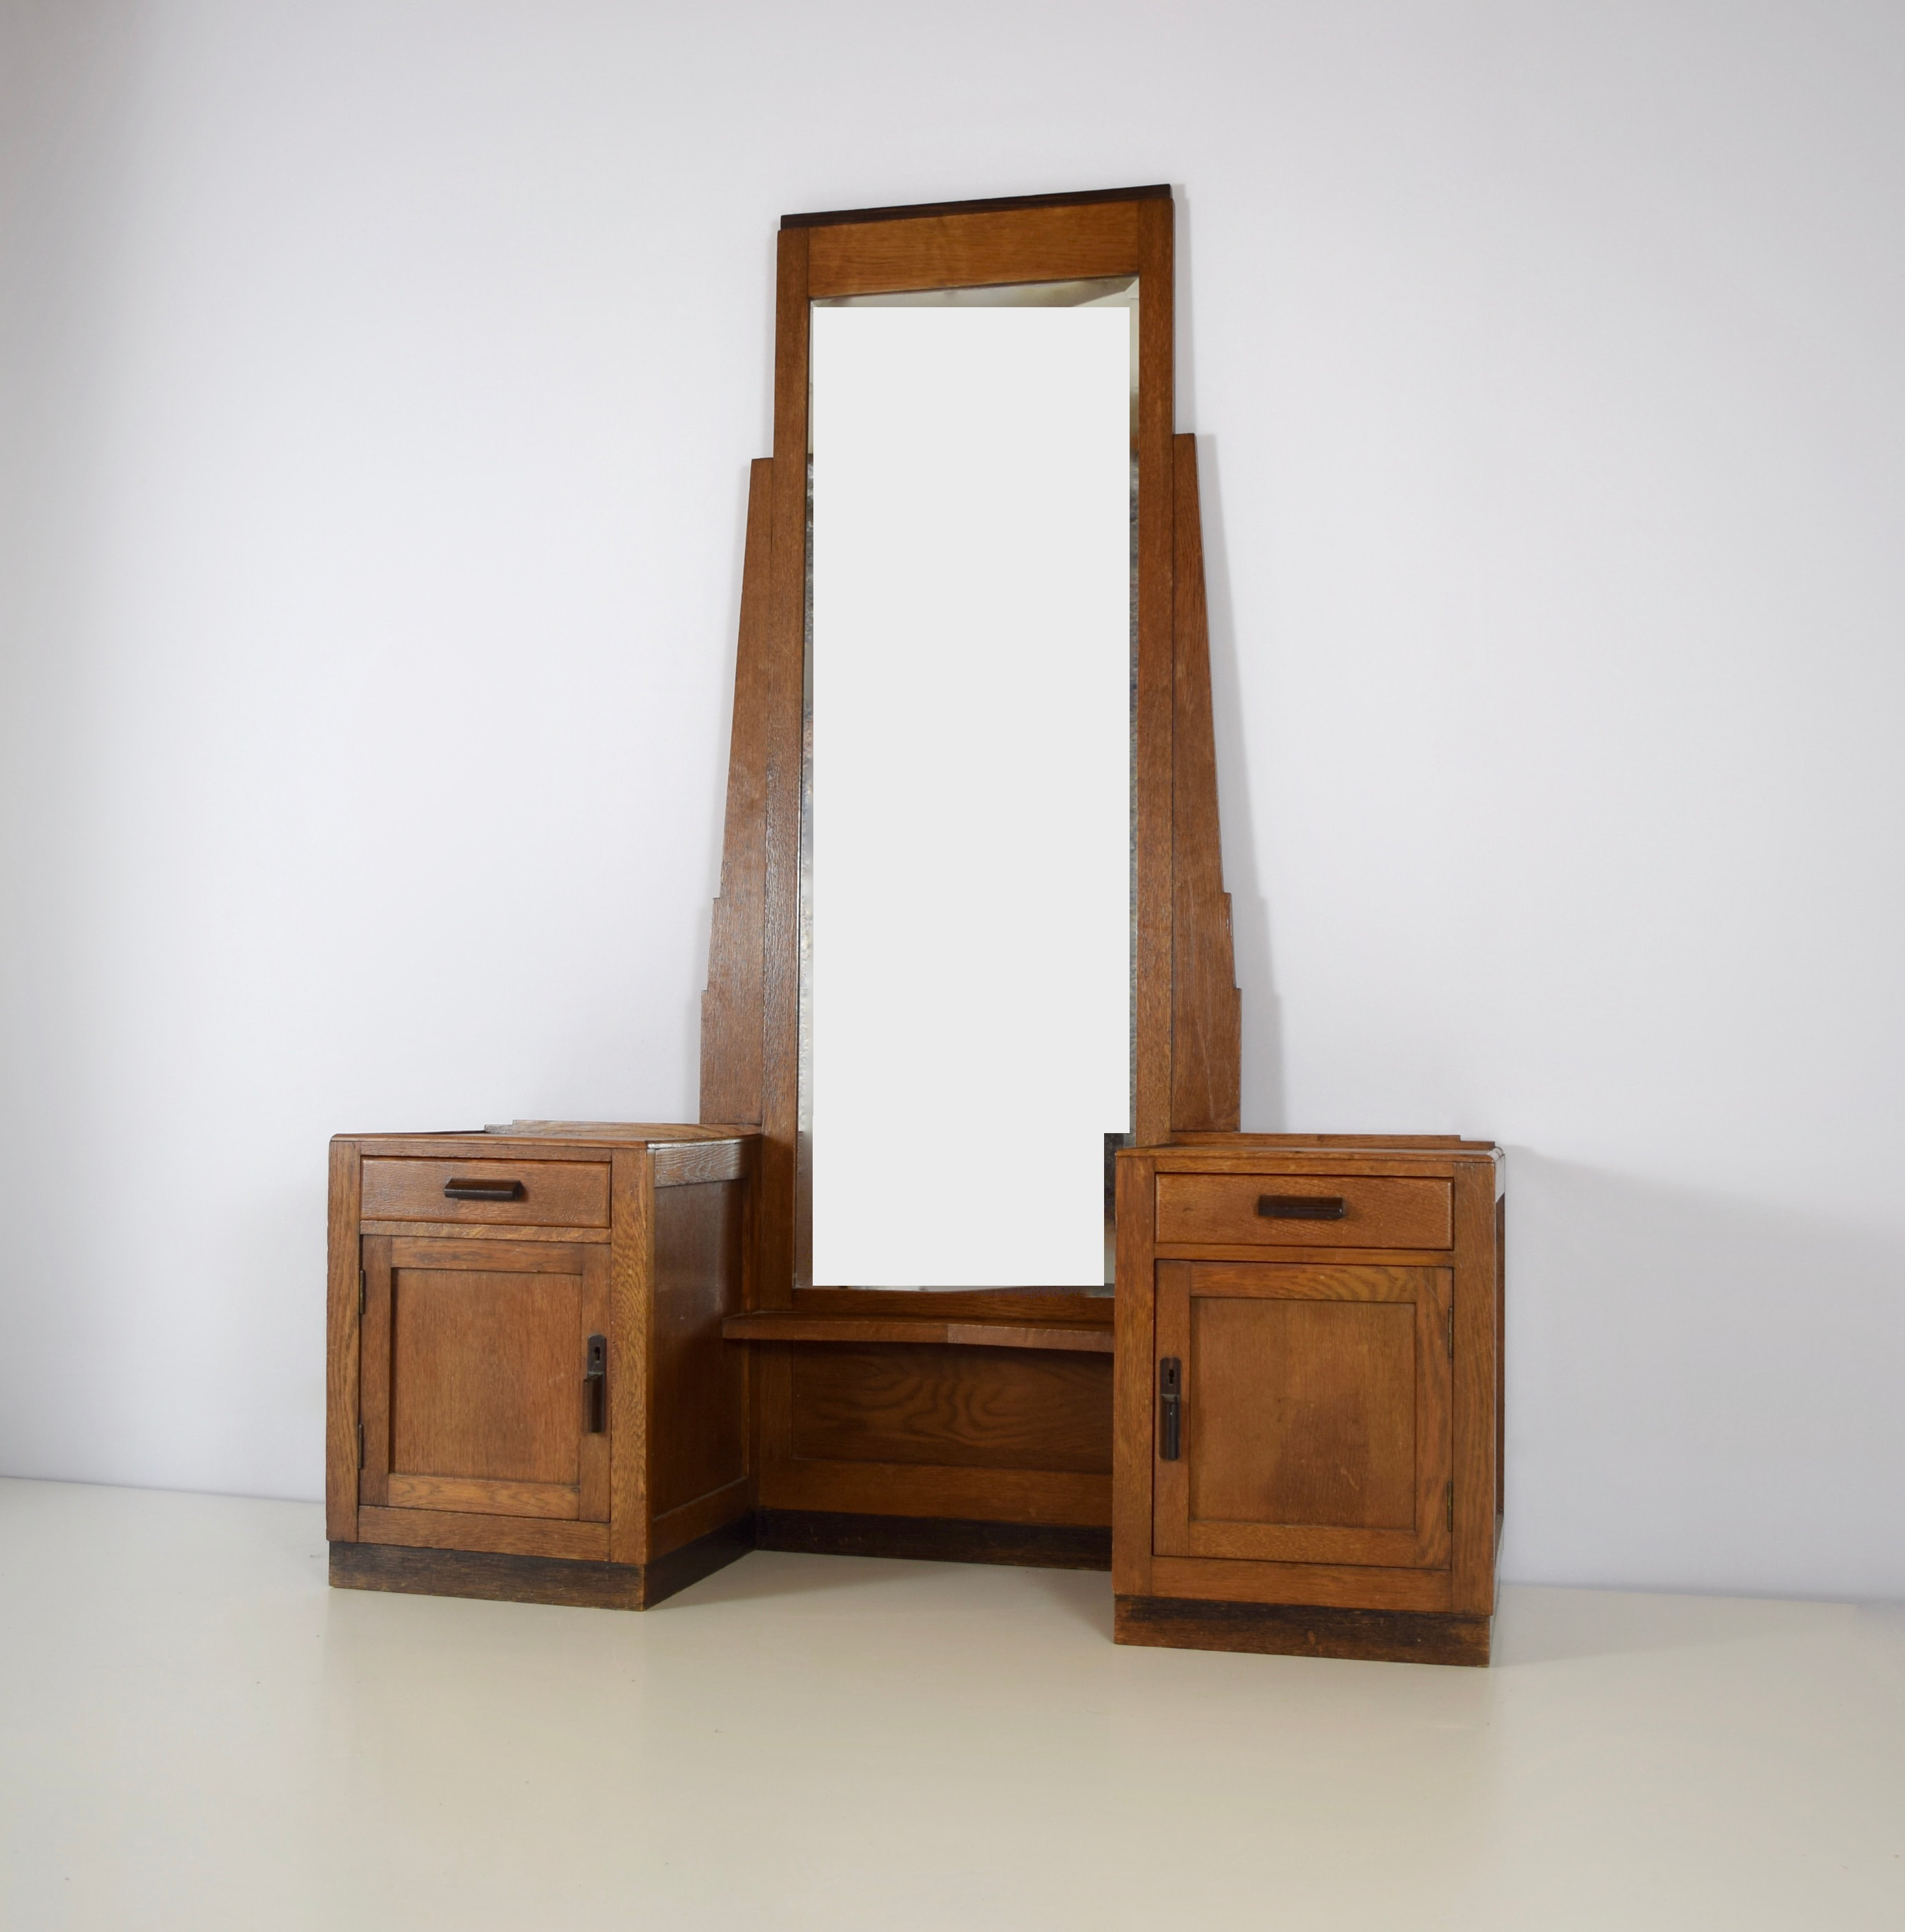 Amsterdam School Hall Cabinet or Dressing Cabinet with Mirror